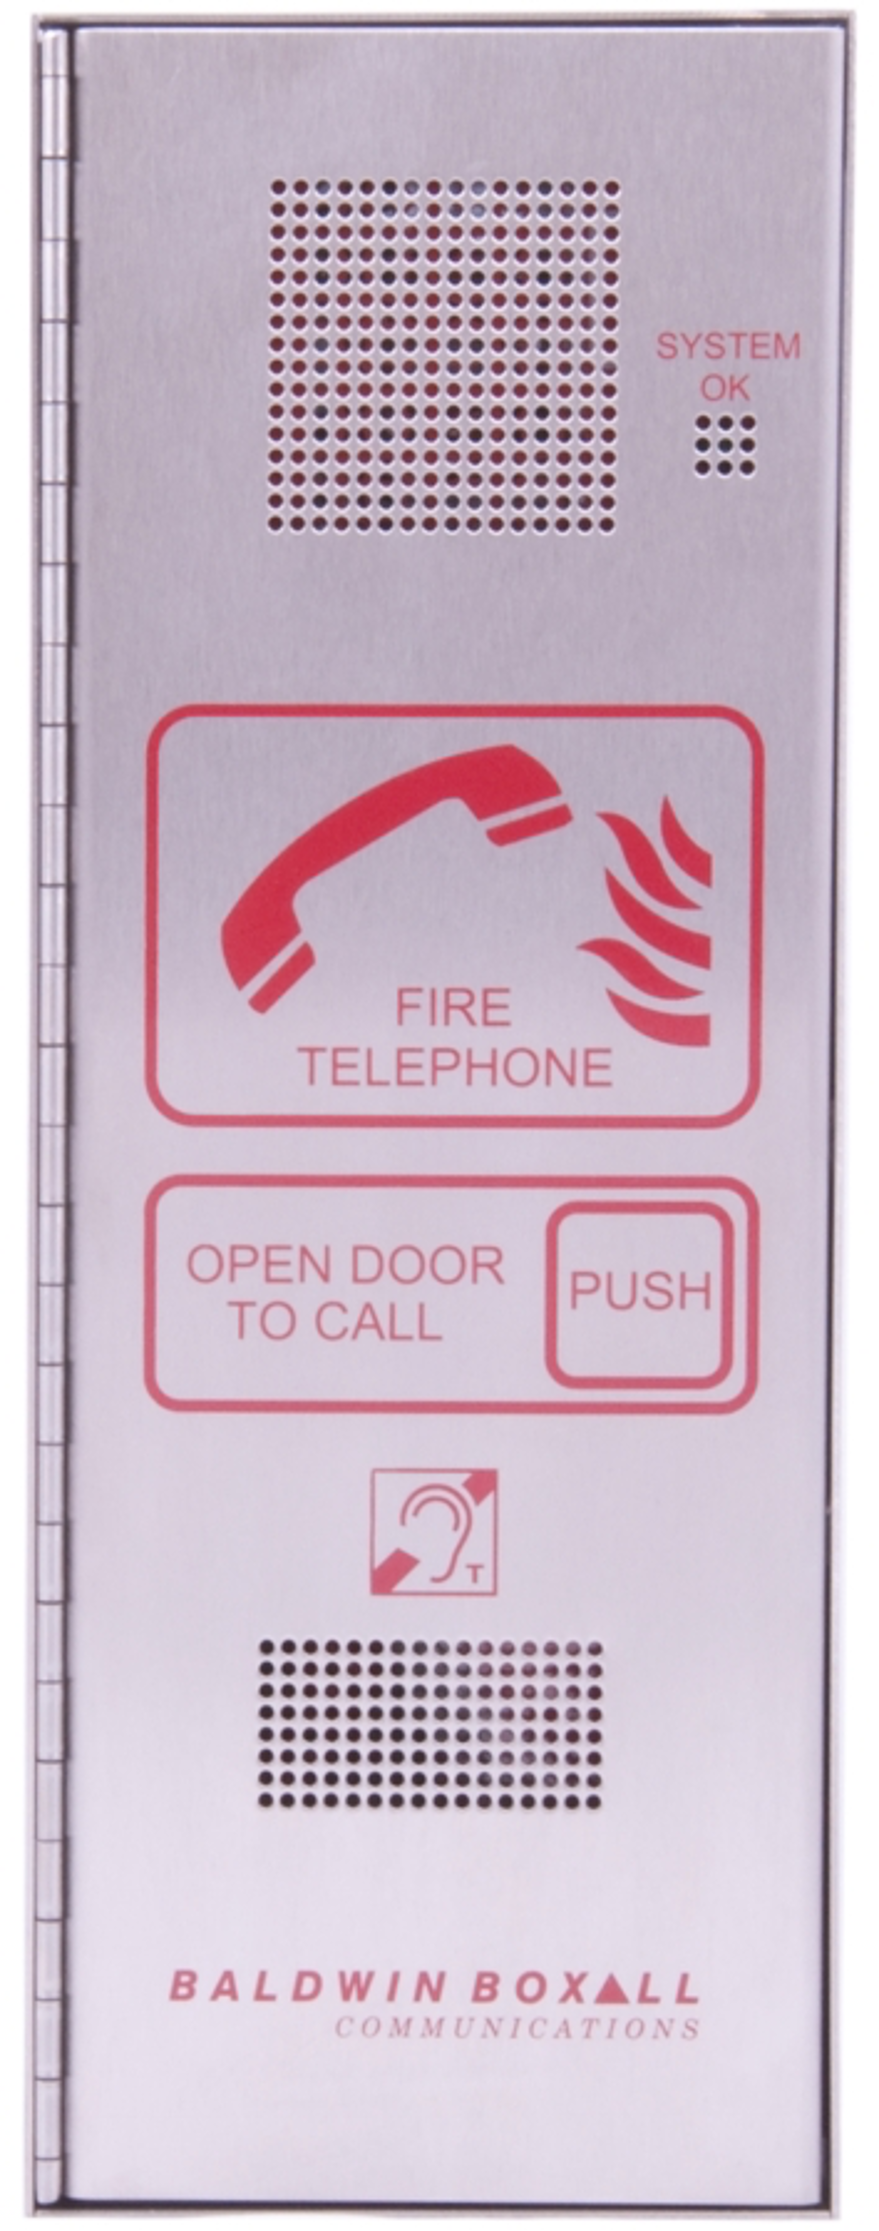 Baldwin Boxall OmniCare BVOCFS Type-A Fire Telephone with Push Door Stainless Steel